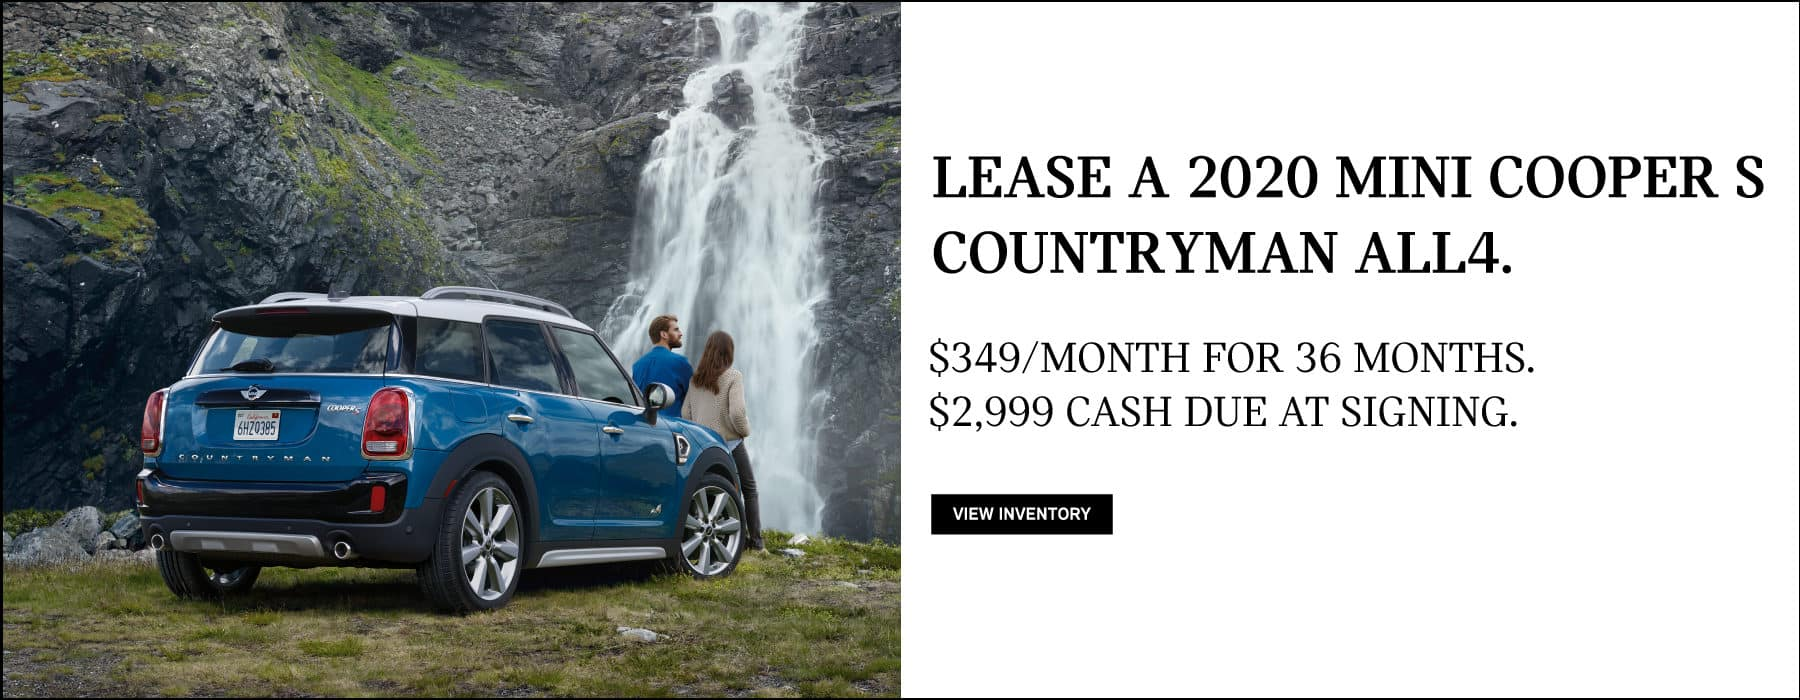 Lease a 2020 MINI Cooper S Countryman for $349/mo. View Inventory